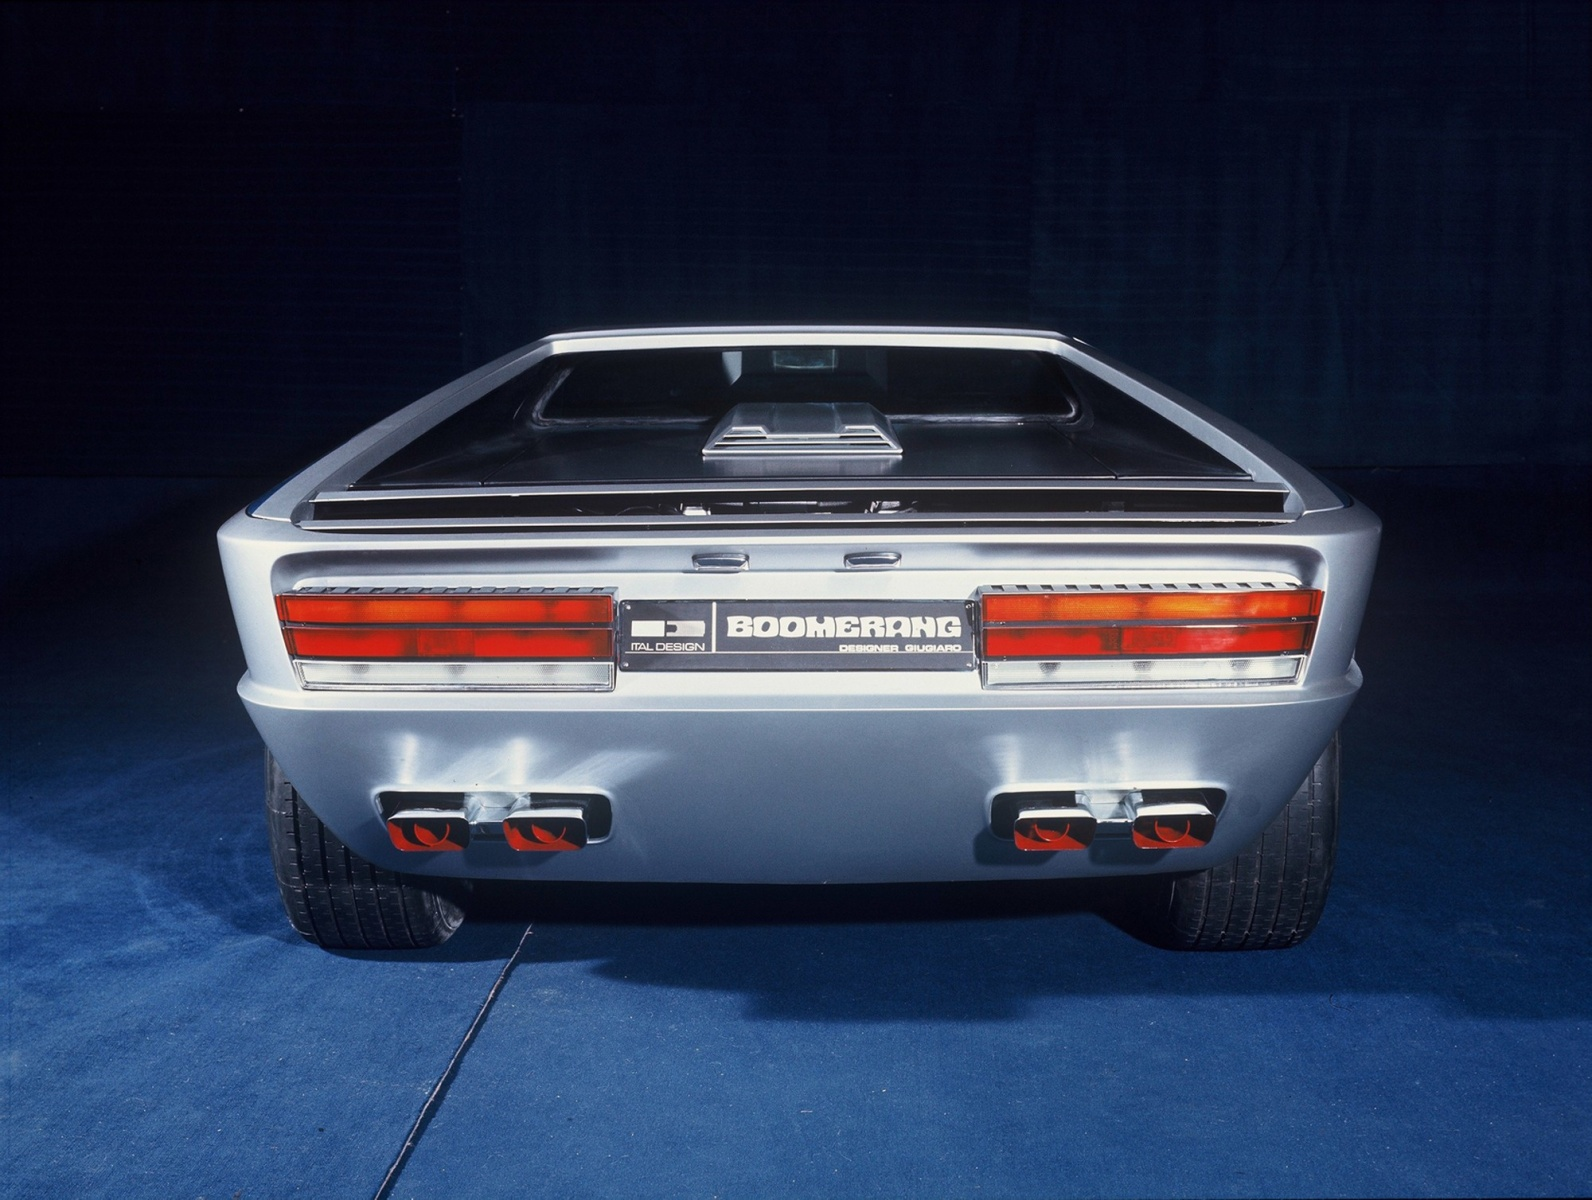 one-of-a-kind-maserati-boomerang-sold-for-376-million-less-than-initially-estimated_5